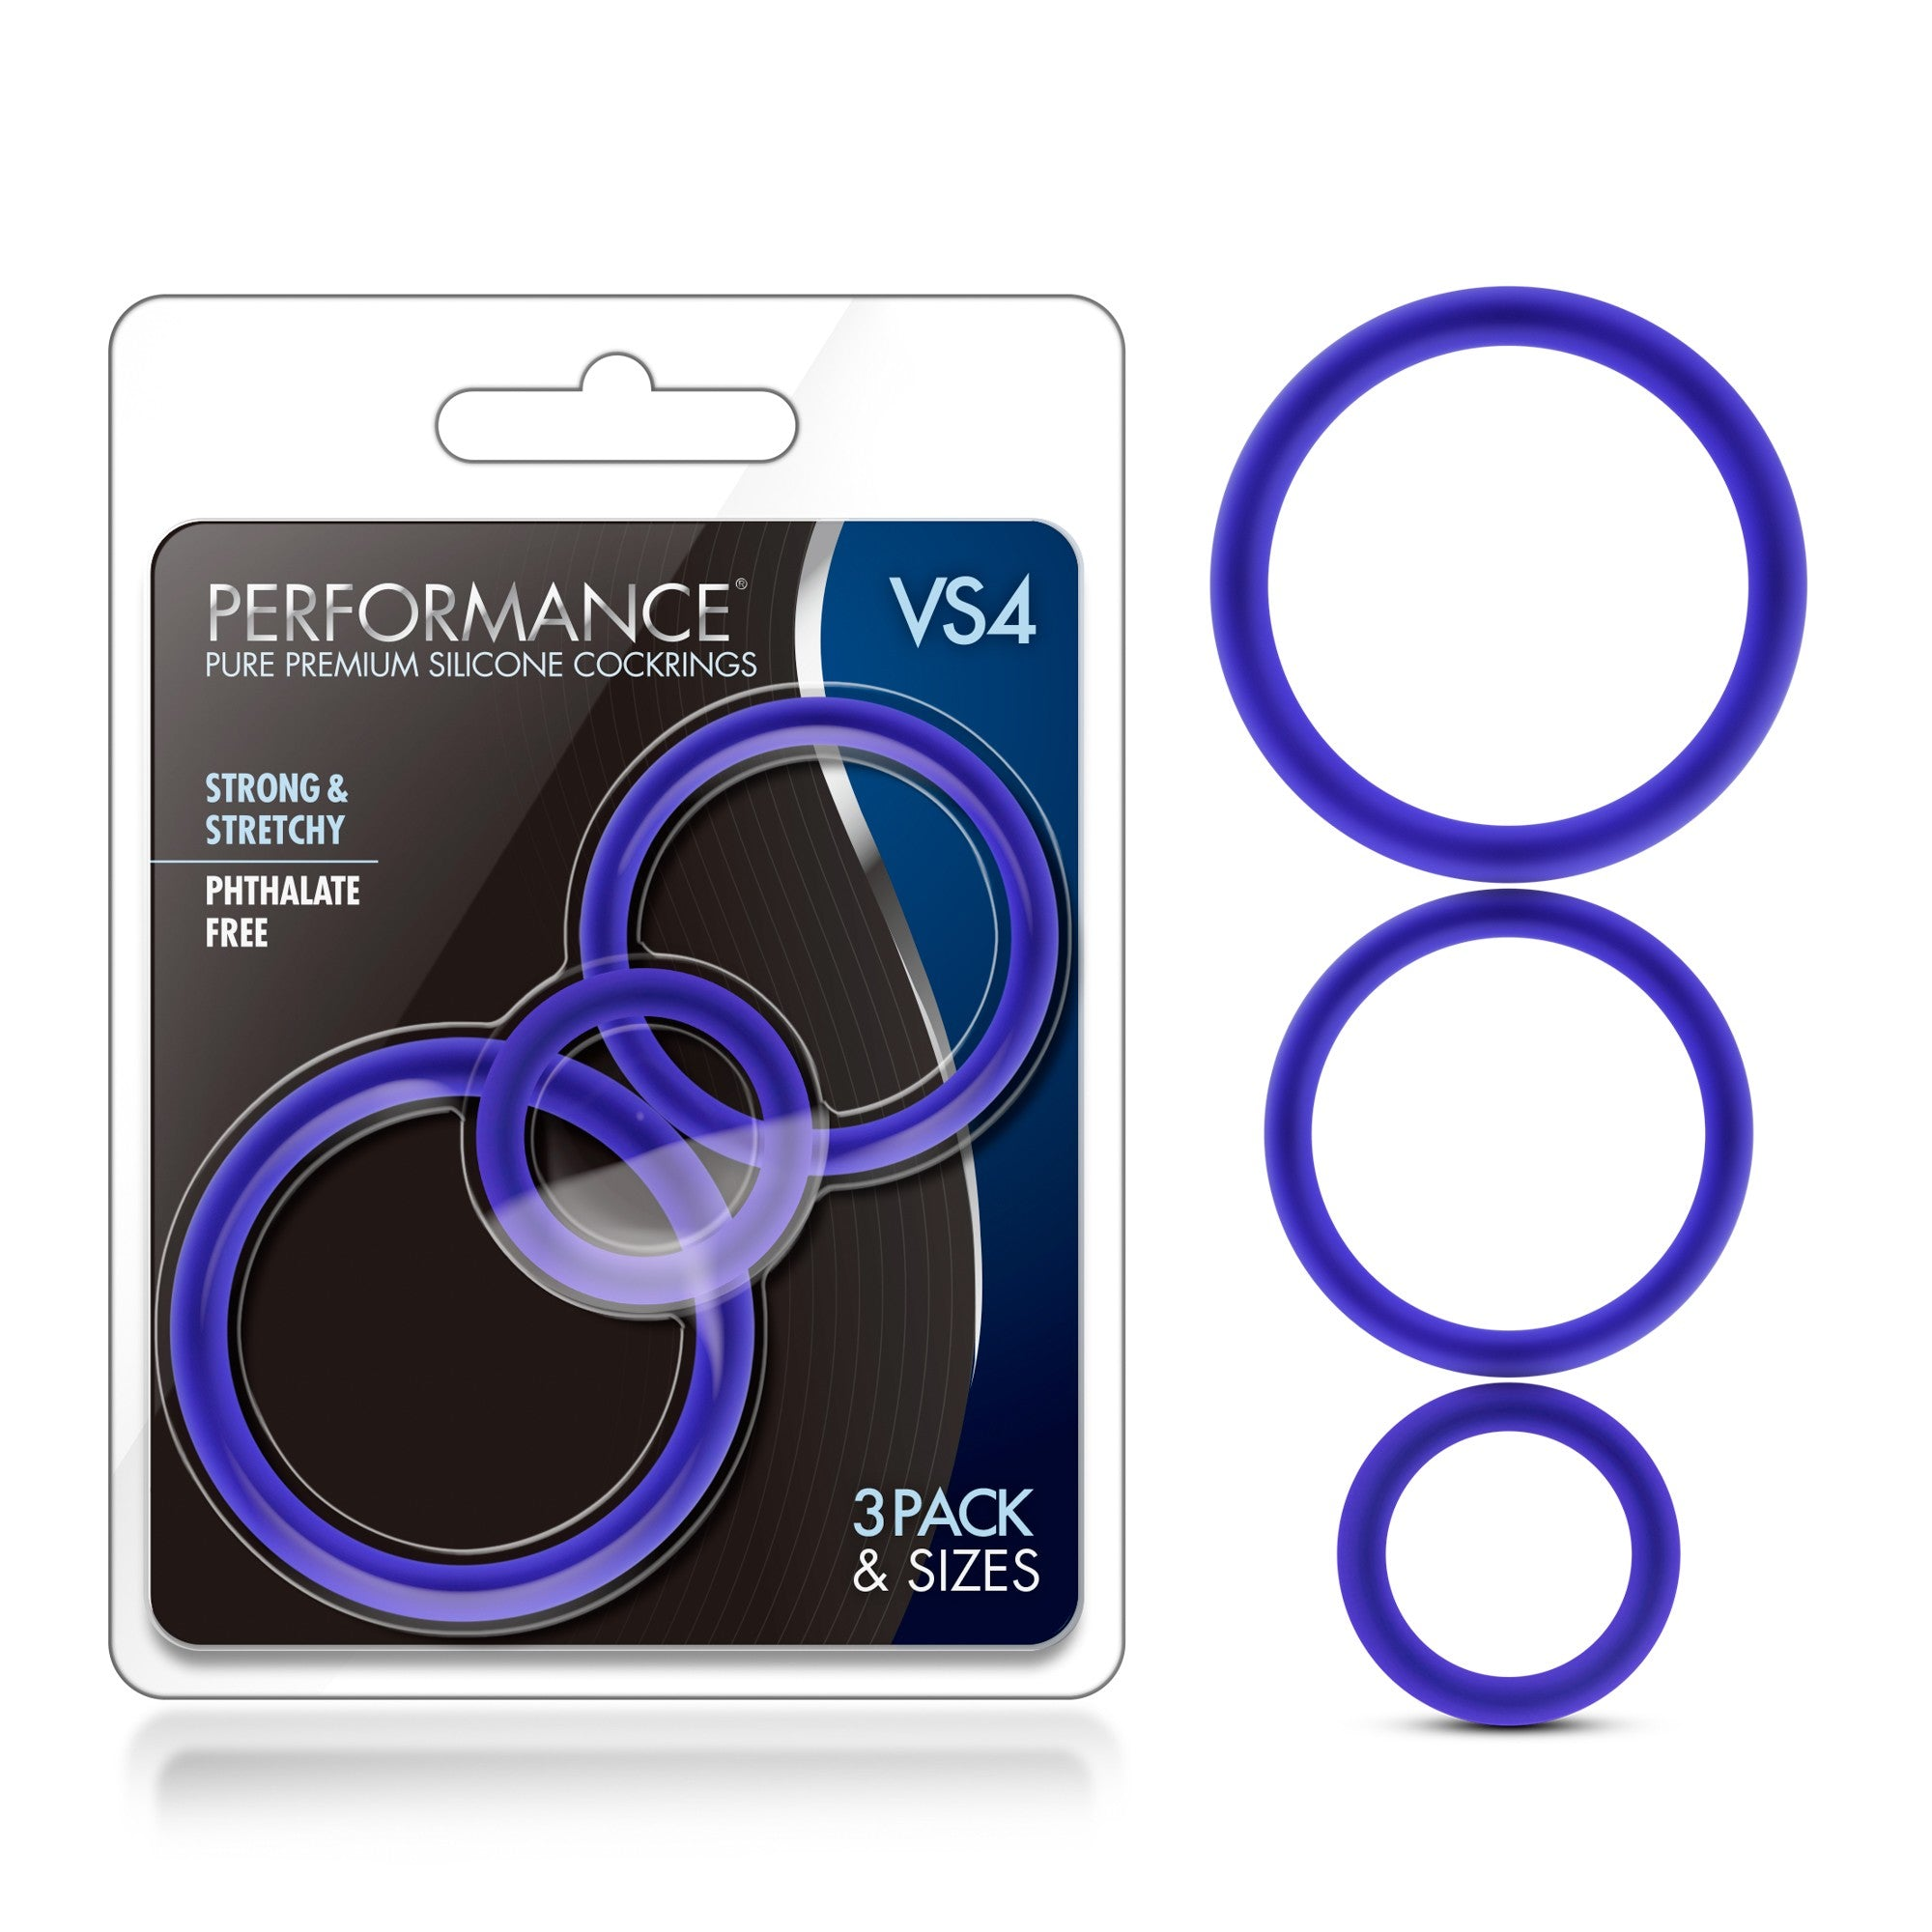 Performance VS4 Silicone Cock Ring Set slider image.